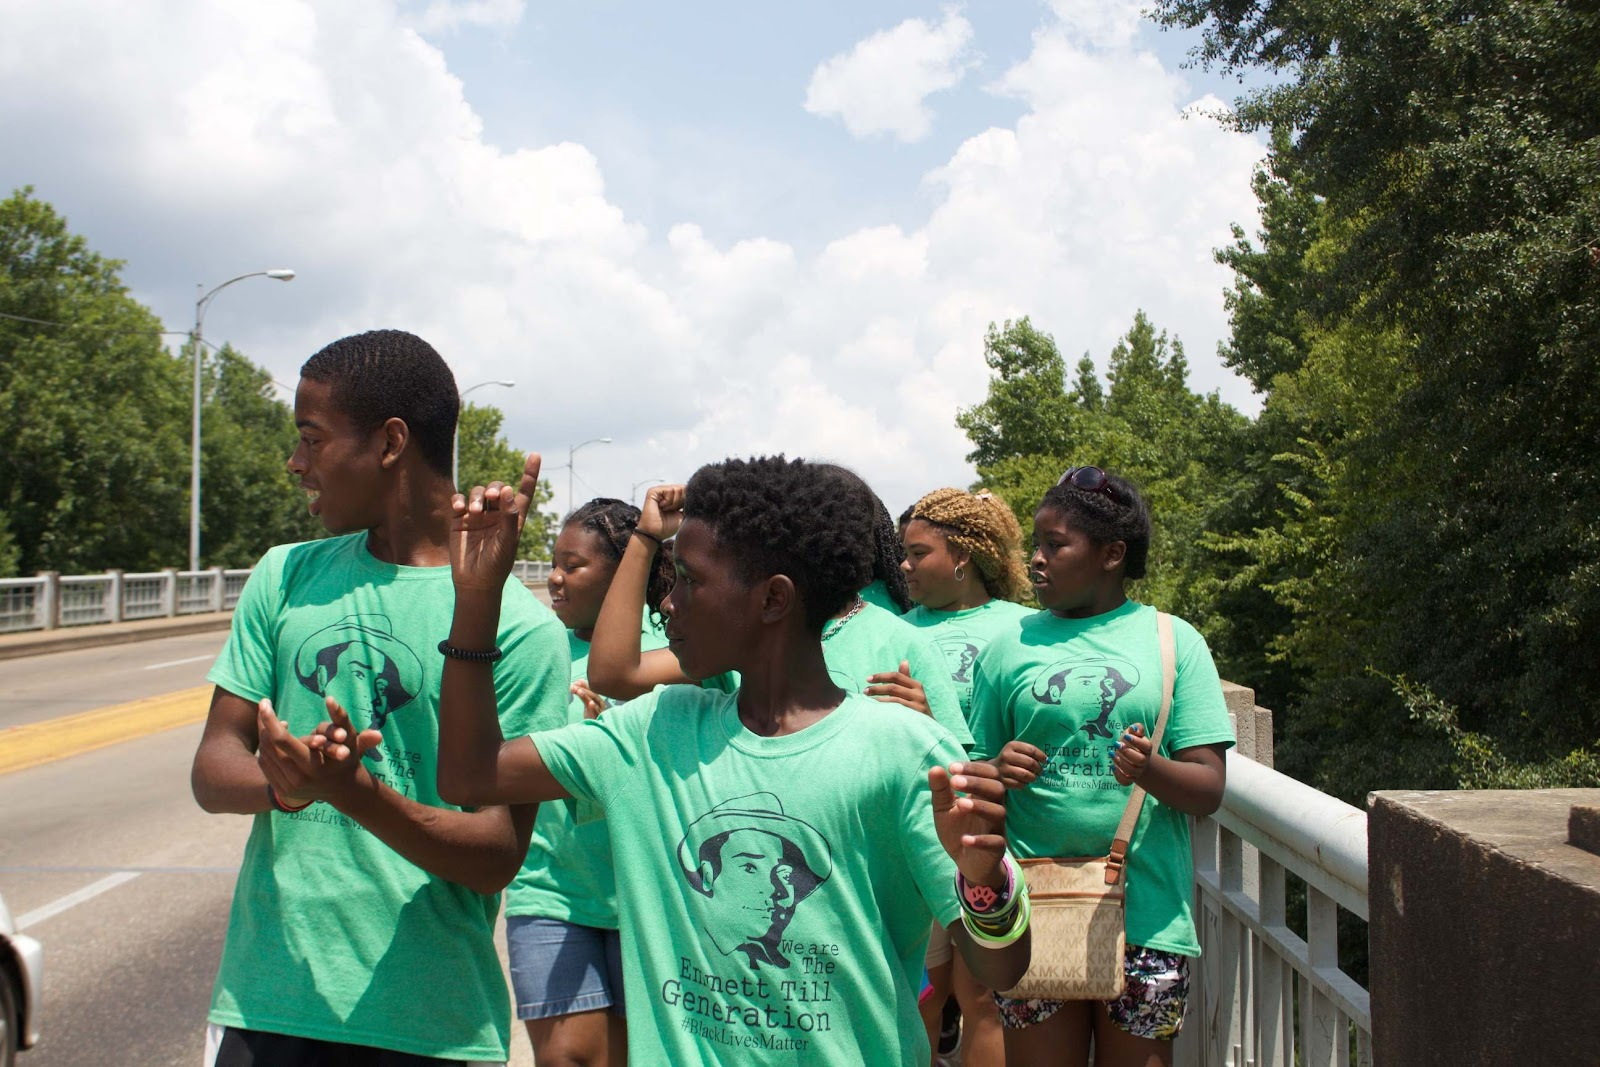 MFP and SCFP students, interns and staff spend the last three weeks of the summer on life-changing trips, here are students crossing the Edmund Pettus Bridge in Selma, Alabama